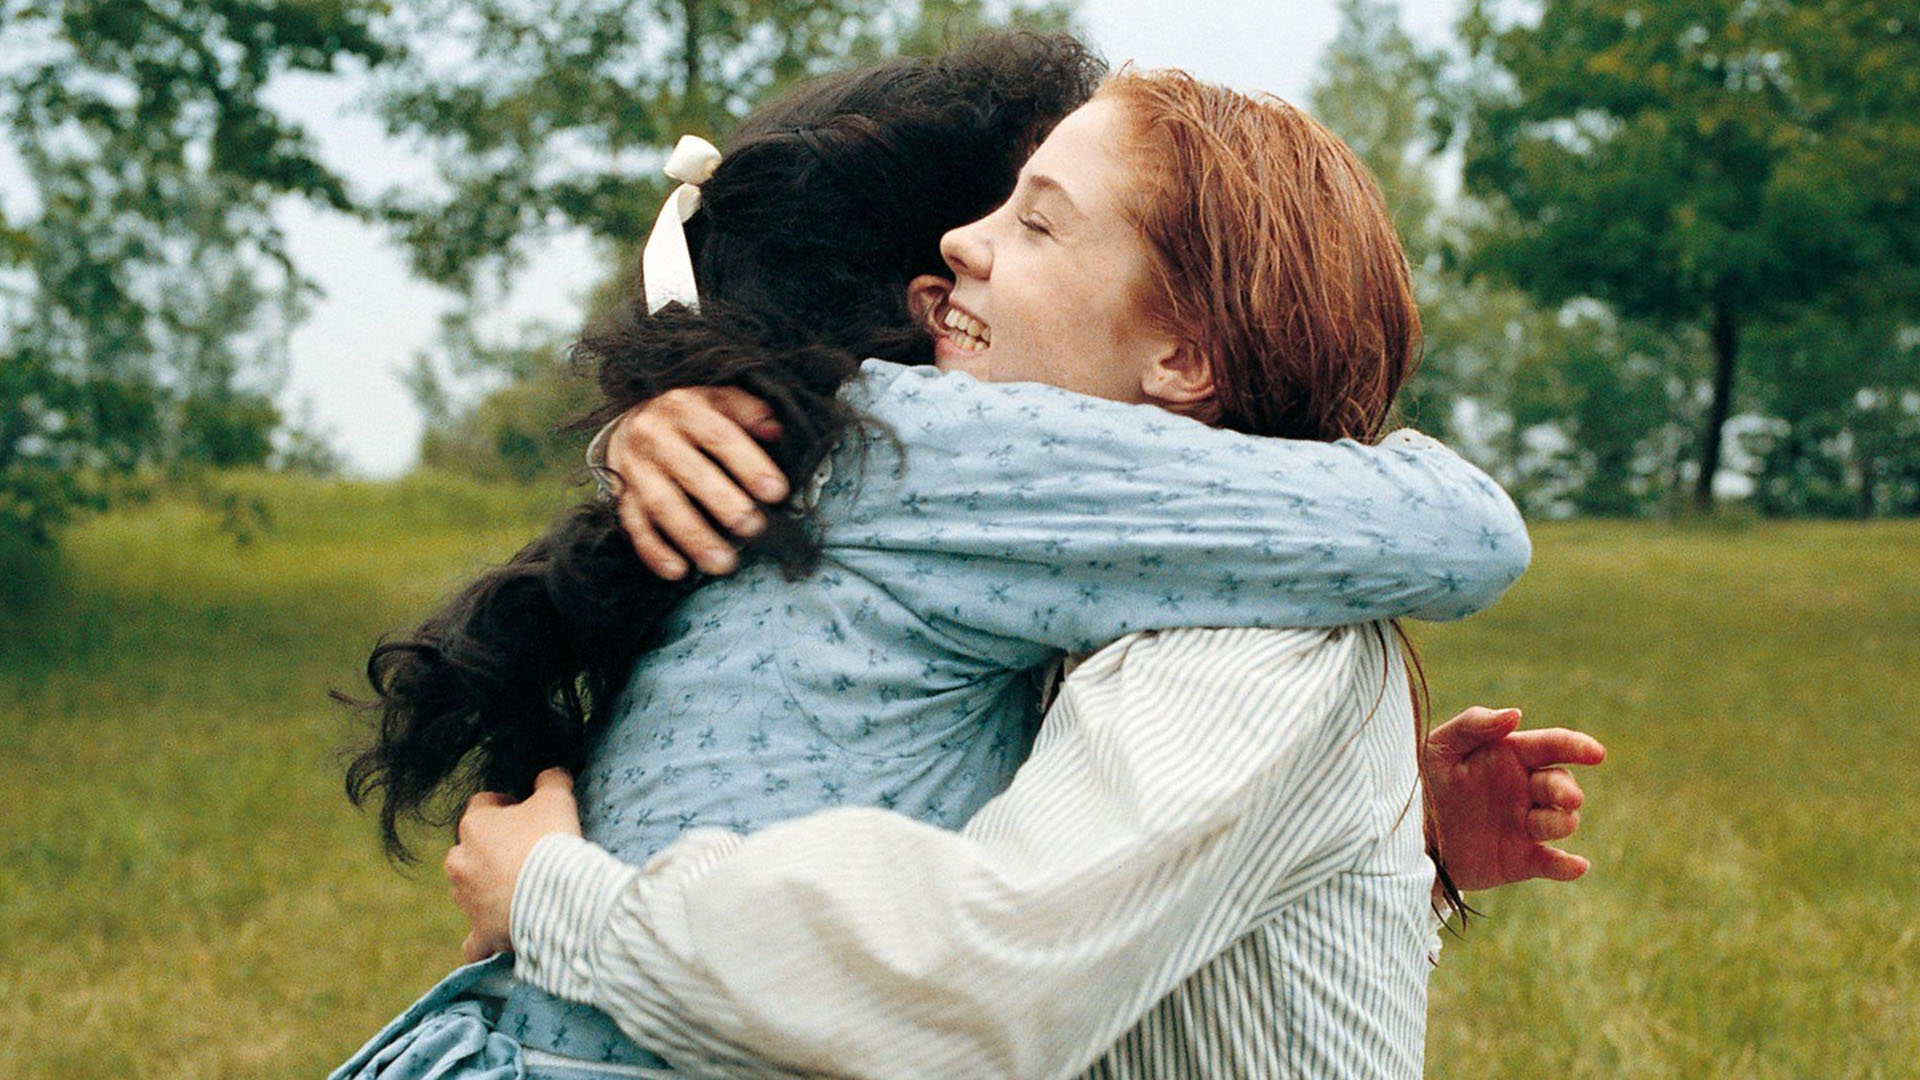 20 Anne of Green Gables Fanfiction Stories Based on the